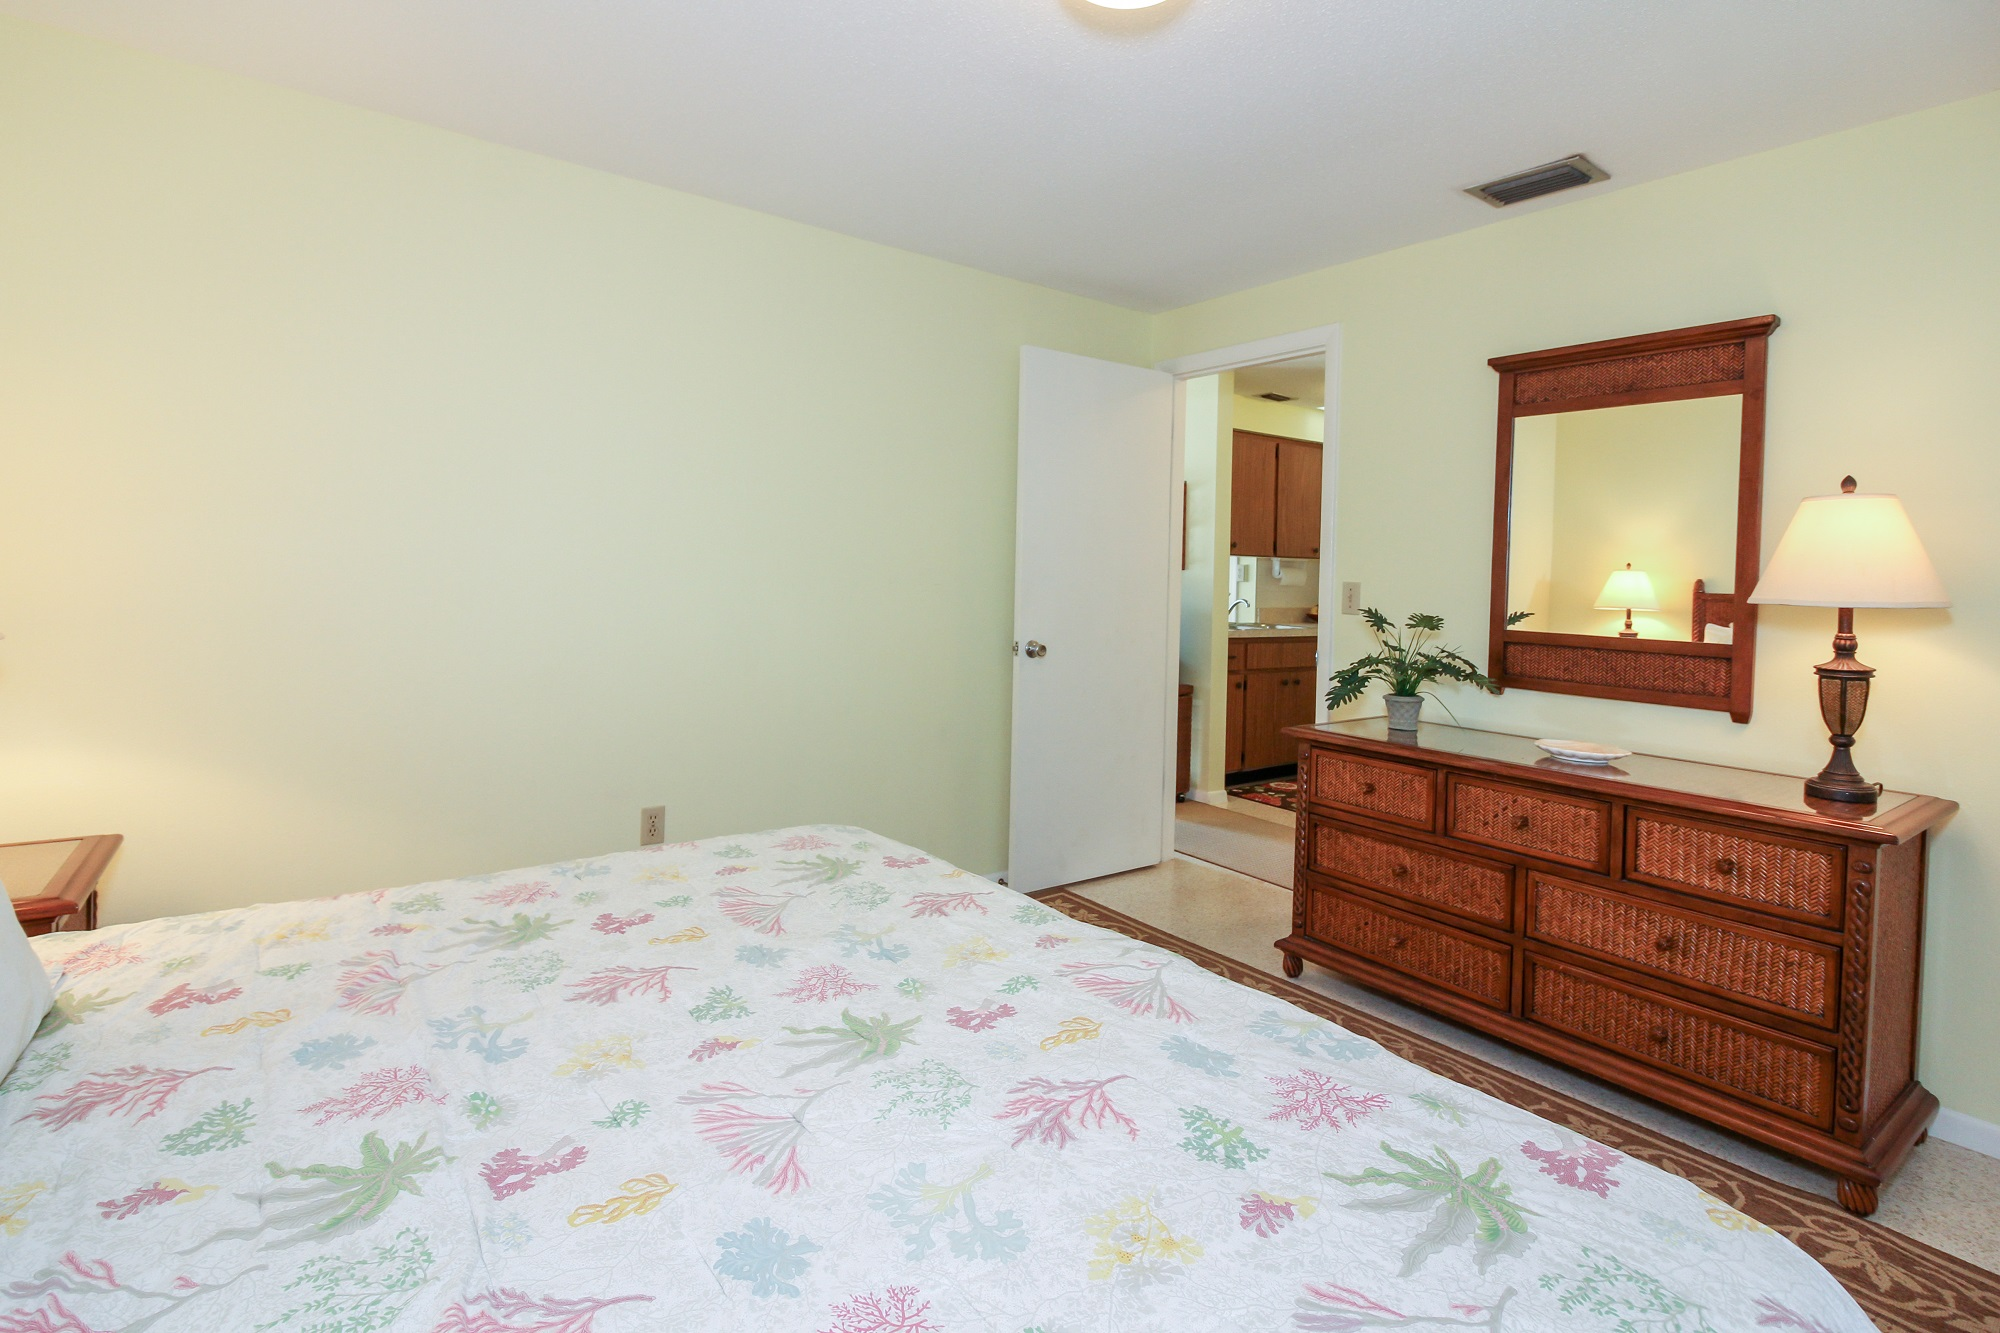 Apartment 3 Bedroom Bamboo Apartments Anna Maria Island